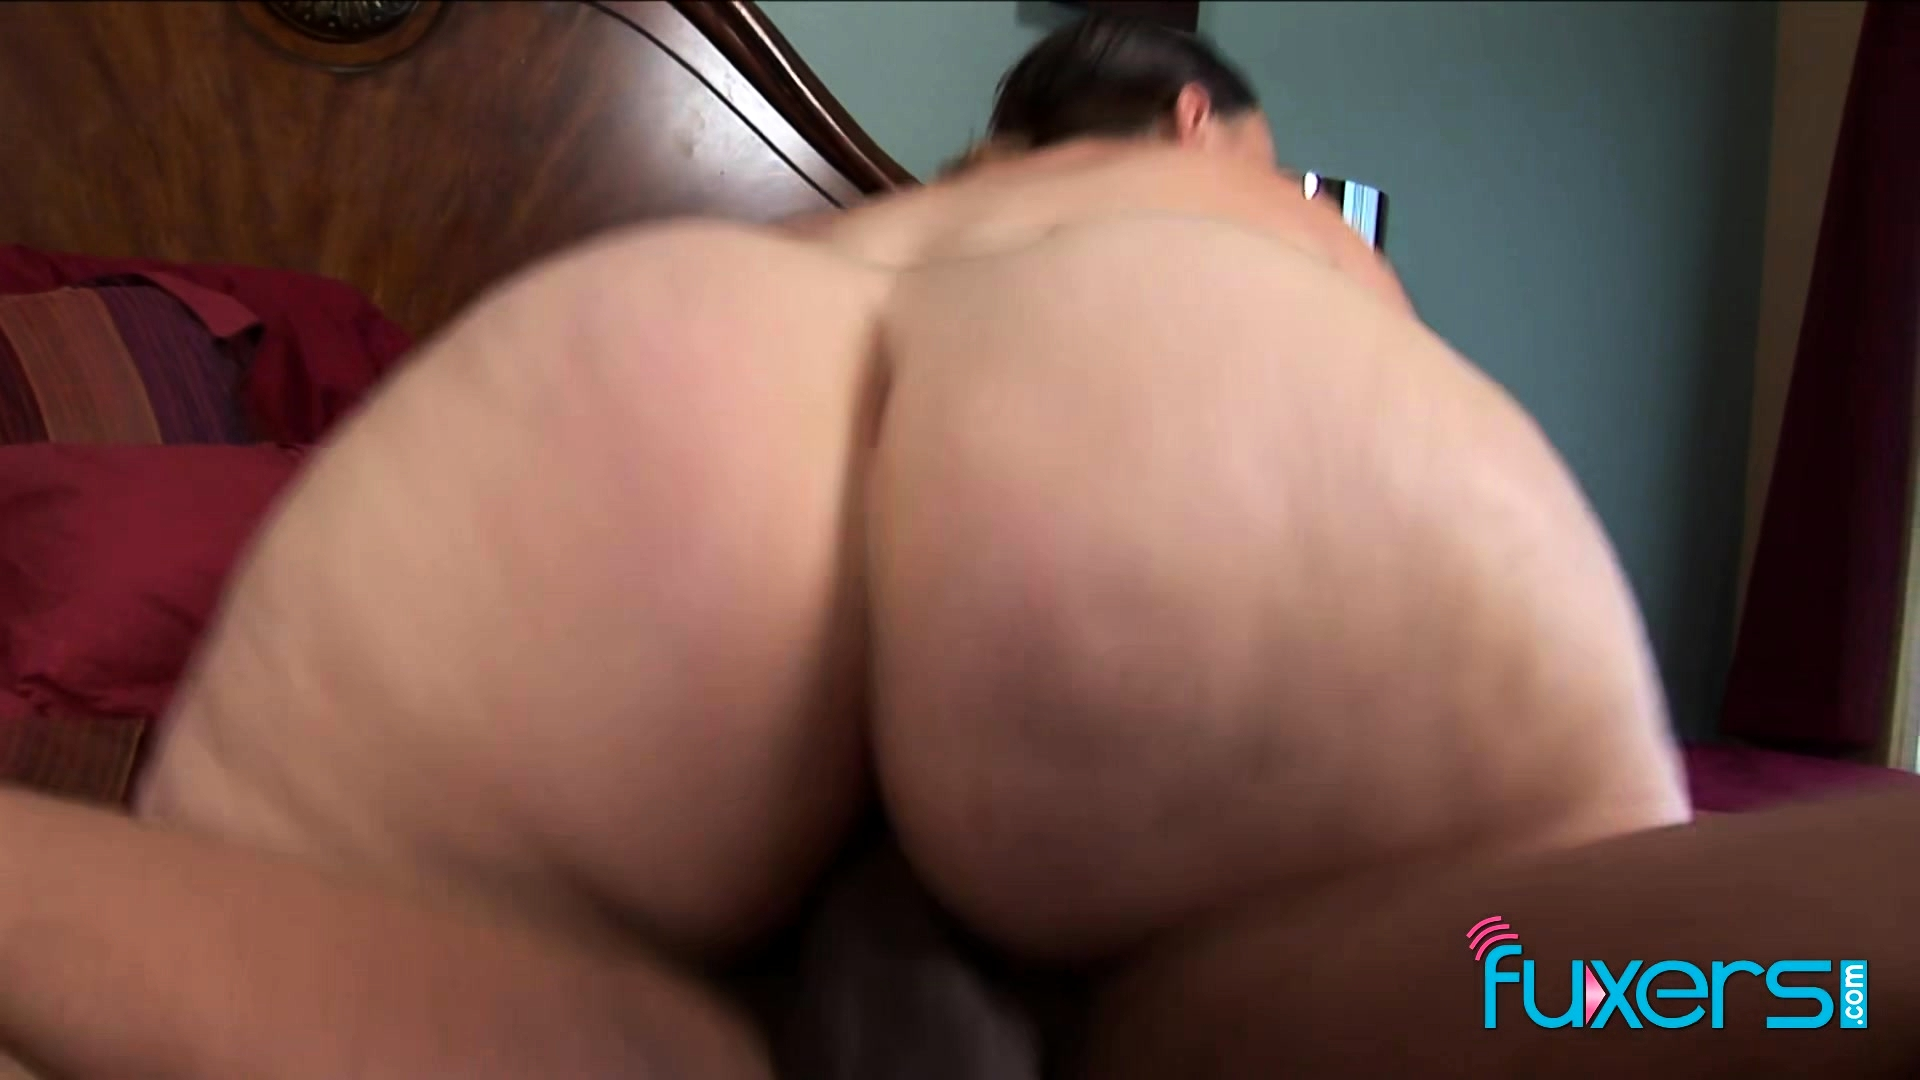 Bbw Porn Videos free mobile porn - victoria secret bbw porn - 3987866